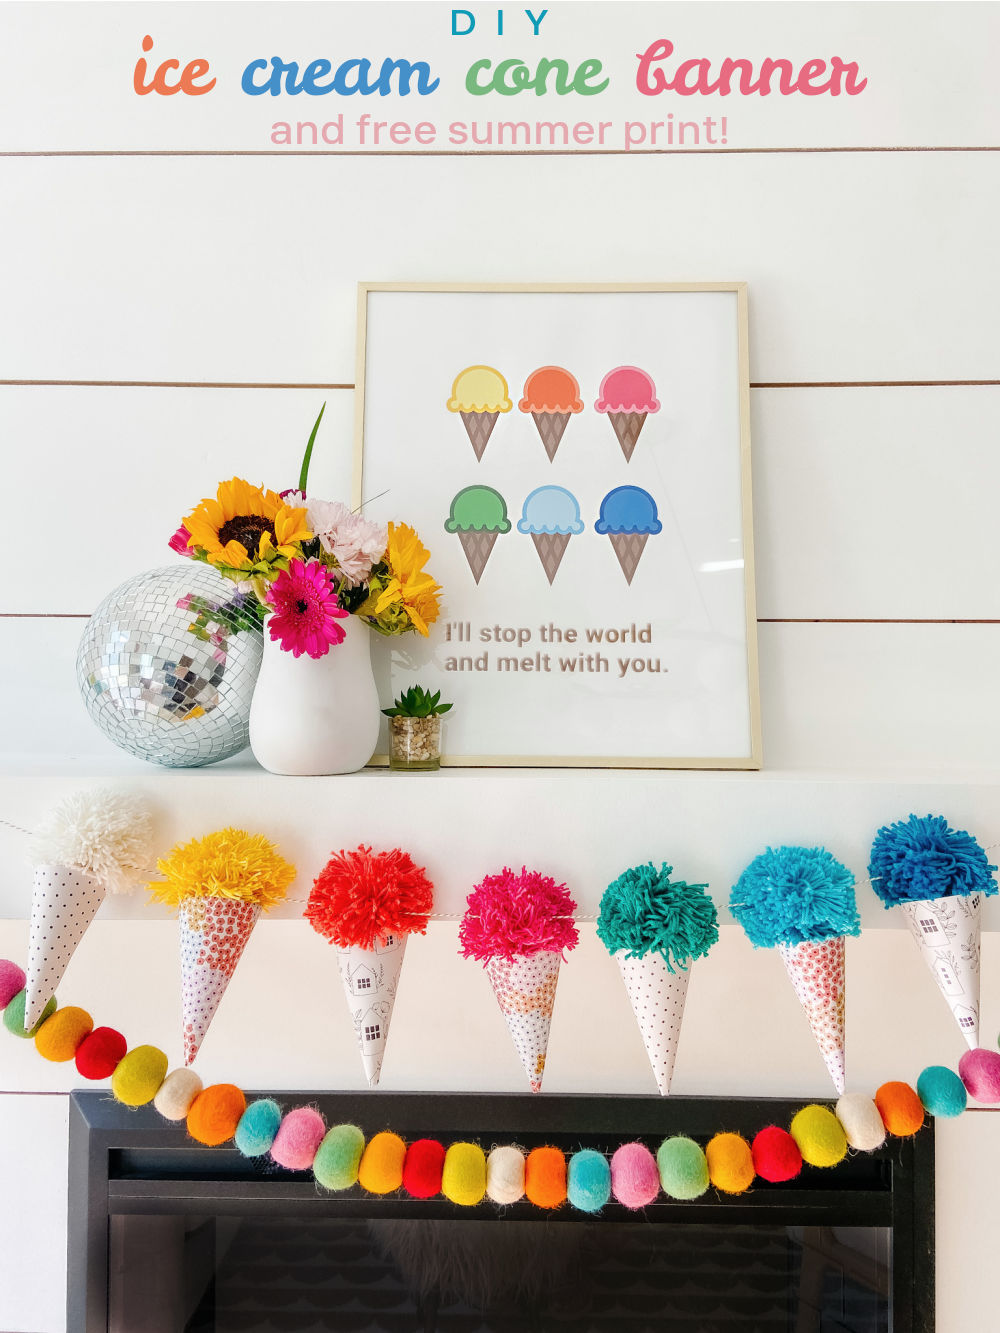 Ice Cream Cone Garland and Free Summer Printable. Celebrate Summer by creating an DIY Ice Cream Cone Banner with a matching printable for instant summer decor!